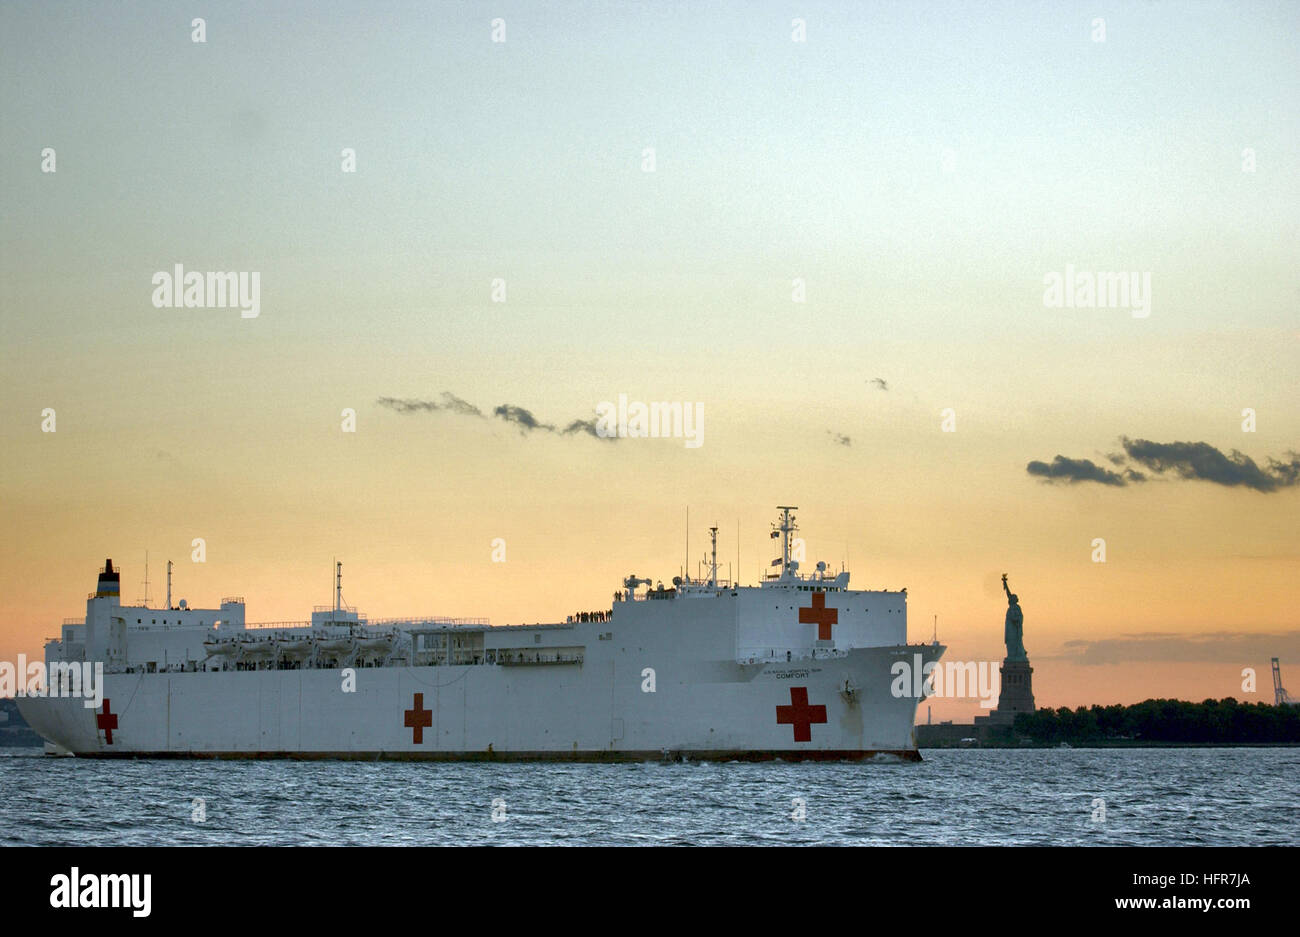 010915-N-3995K-012 New York, N.Y. (Sept. 15, 2001) -- U.S. Navy hospital ship USNS Comfort (T-AH 20) passes the - Stock Image